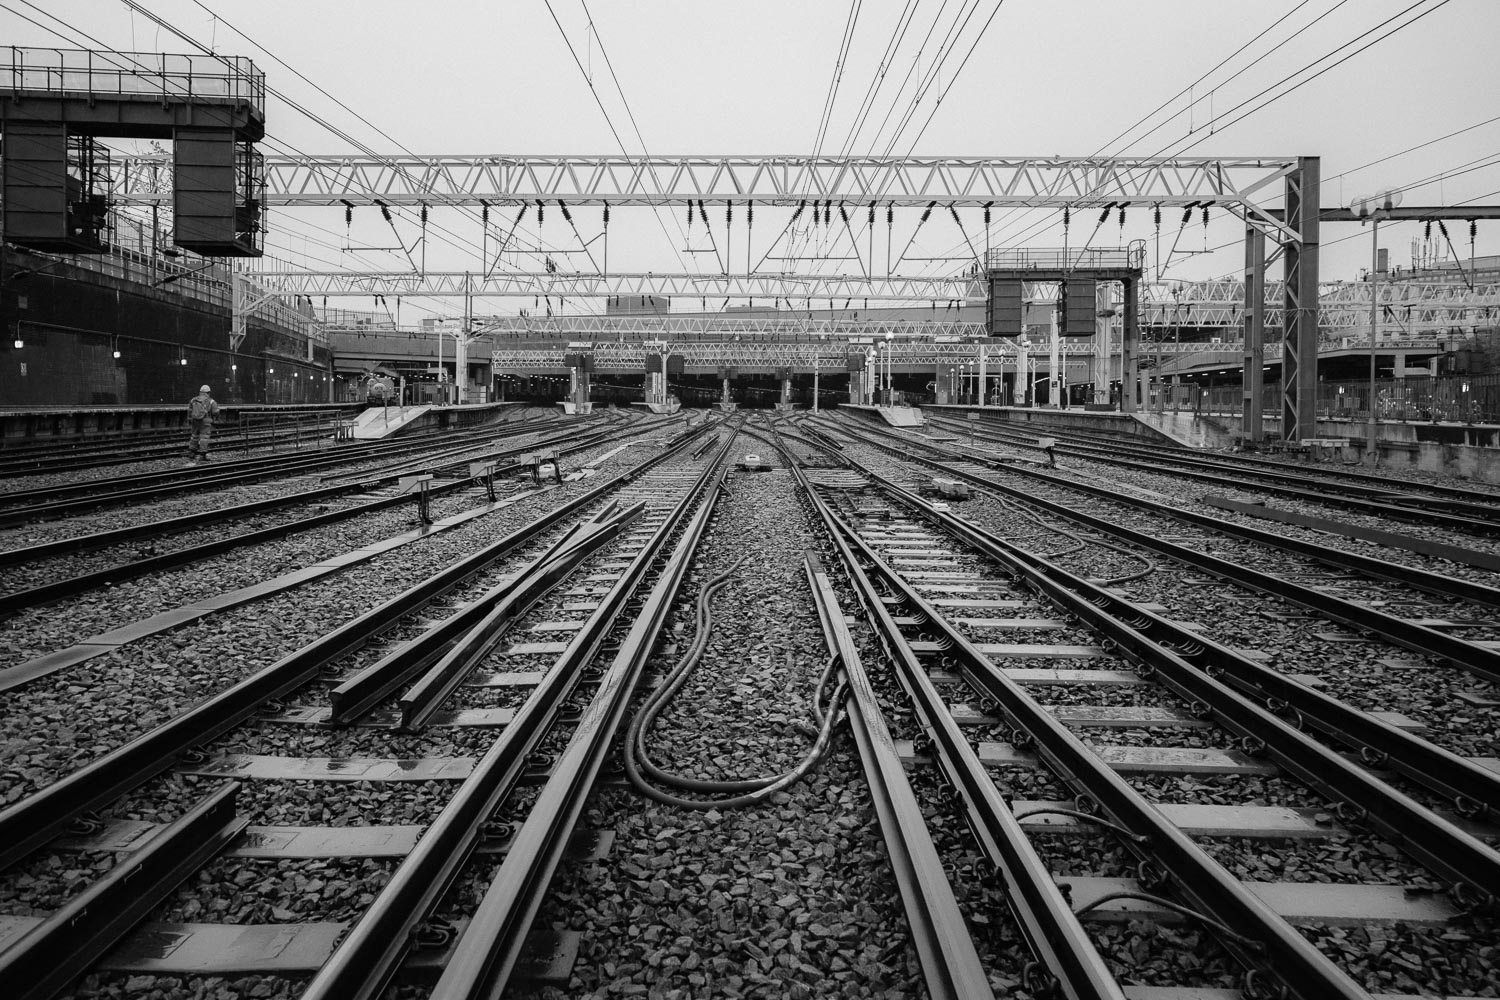 Euston_26 08 2018_148_©Matthew Nichol Photography.jpg